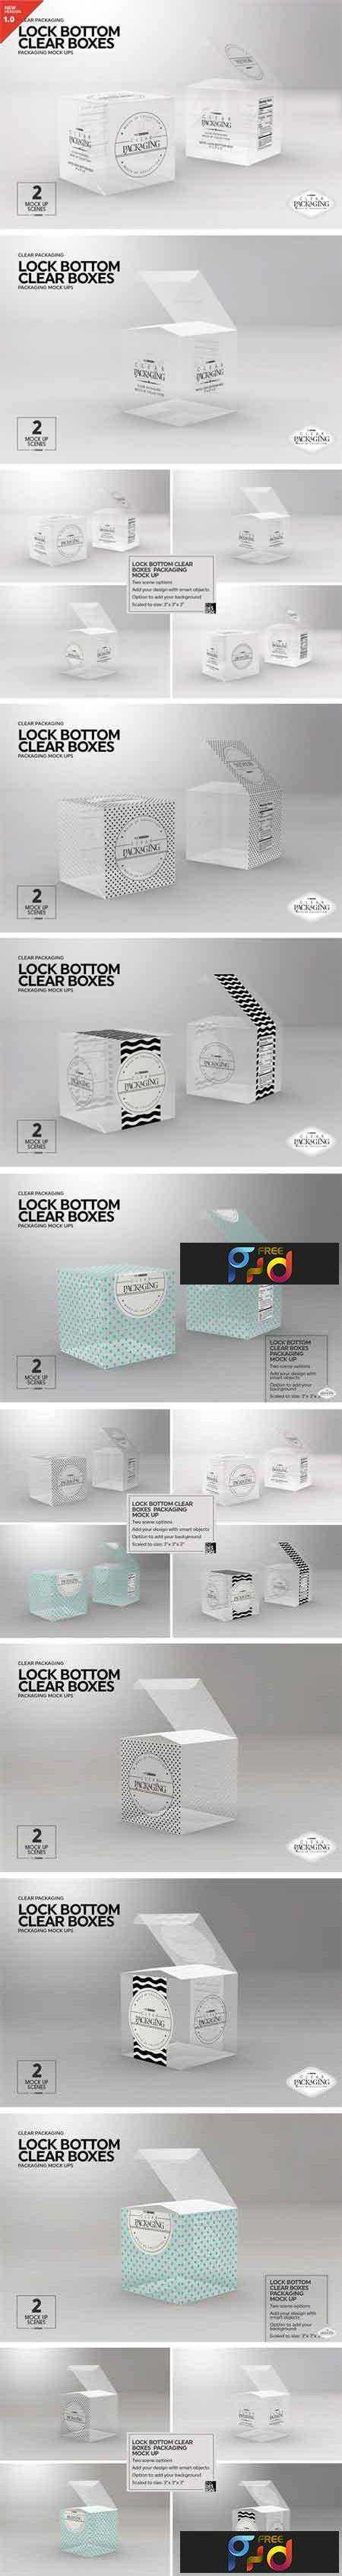 1803073 Clear Lock Bottom Boxes MockUp 2221915 1